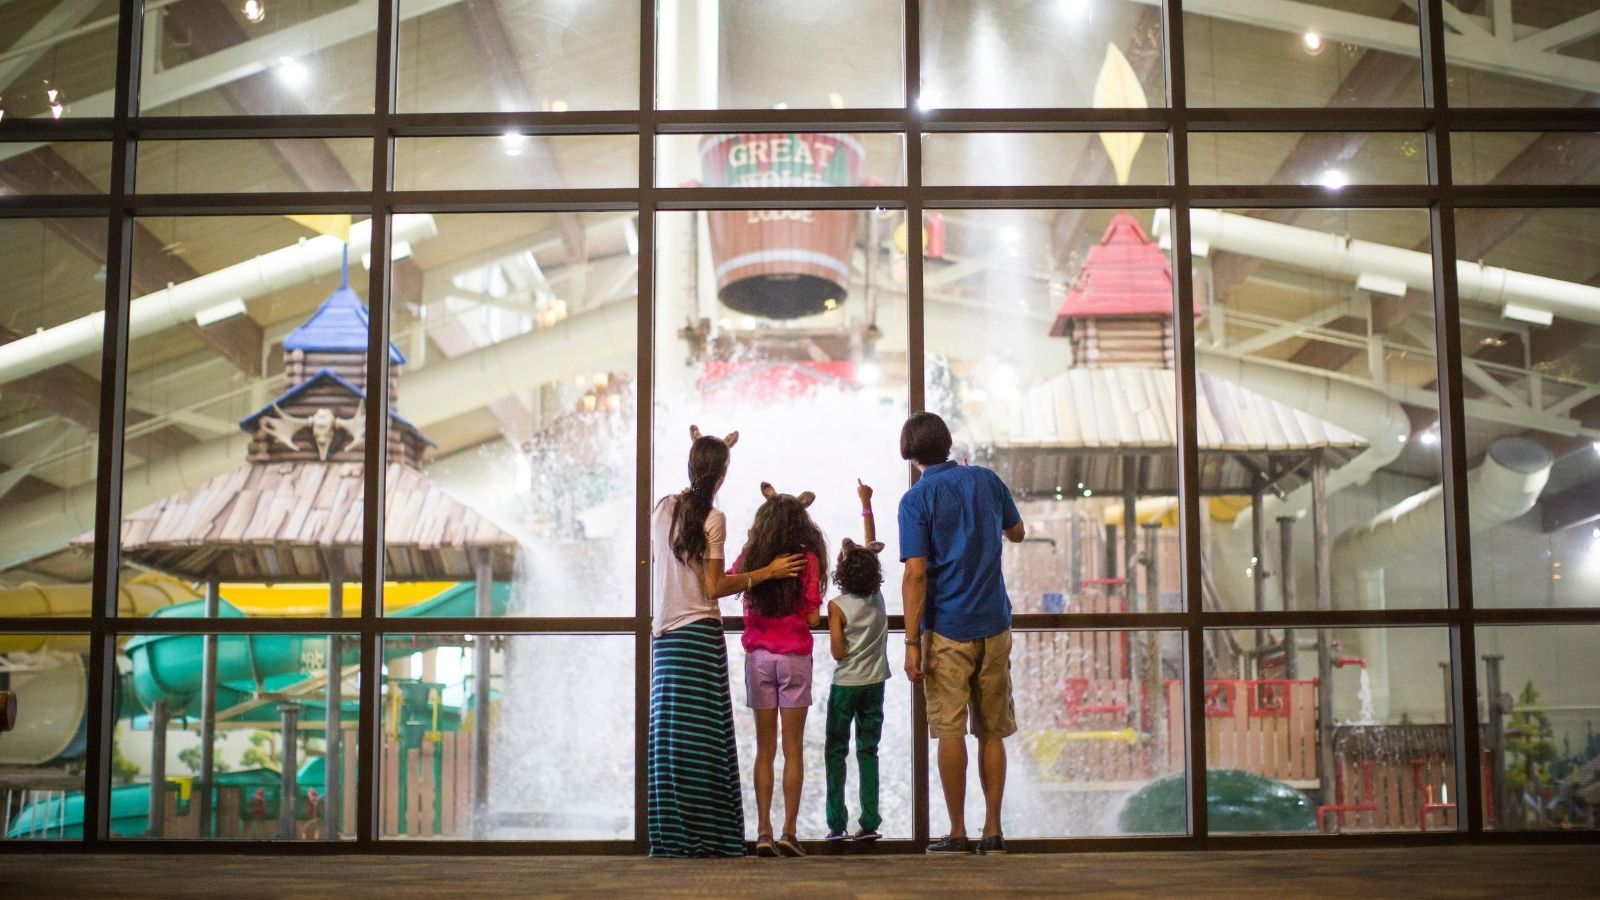 Family at Great Wolf Lodge (Photo: Great Wolf Lodge Resorts)